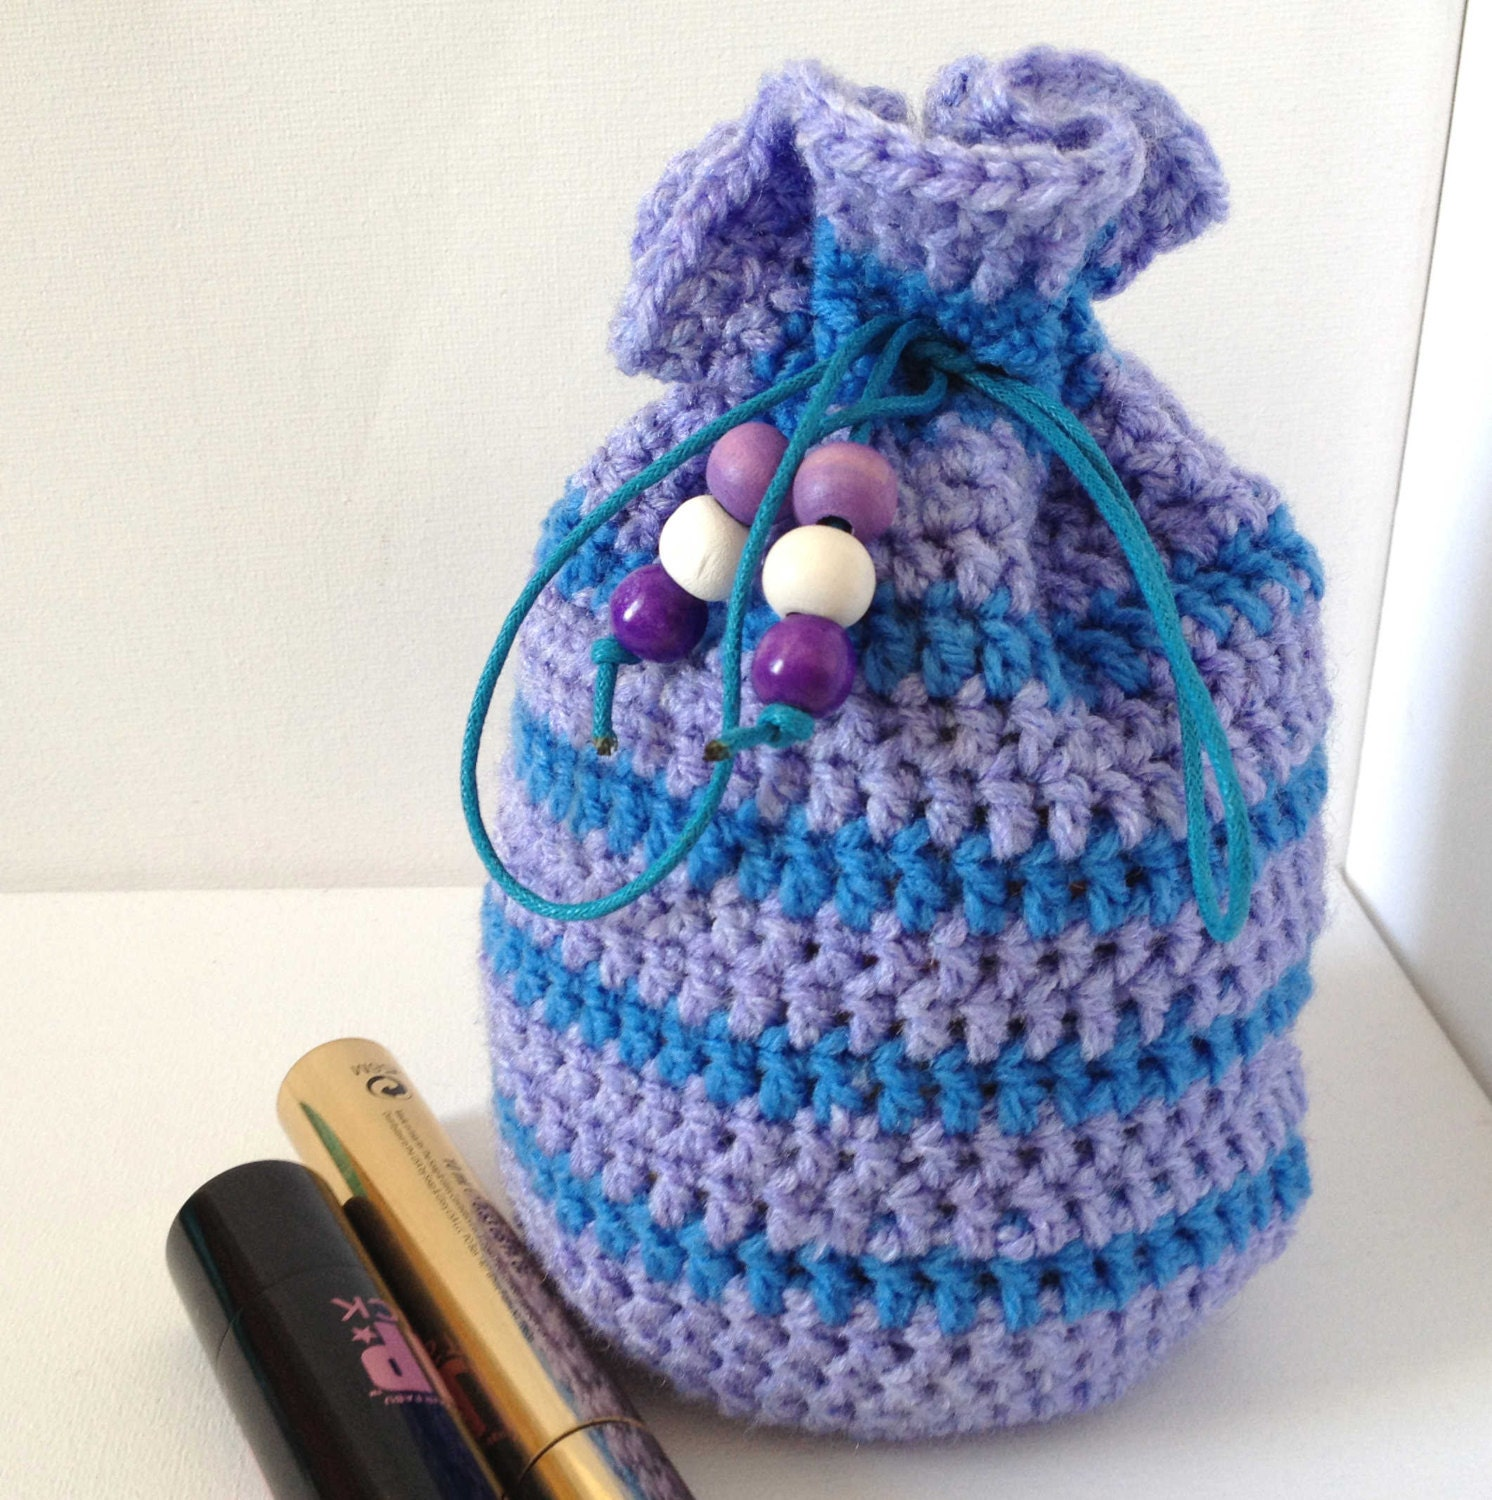 Crochet Childs Bag Pattern : Purple Cosmetic Bag Large Dice Bag Purple and Blue Crocheted